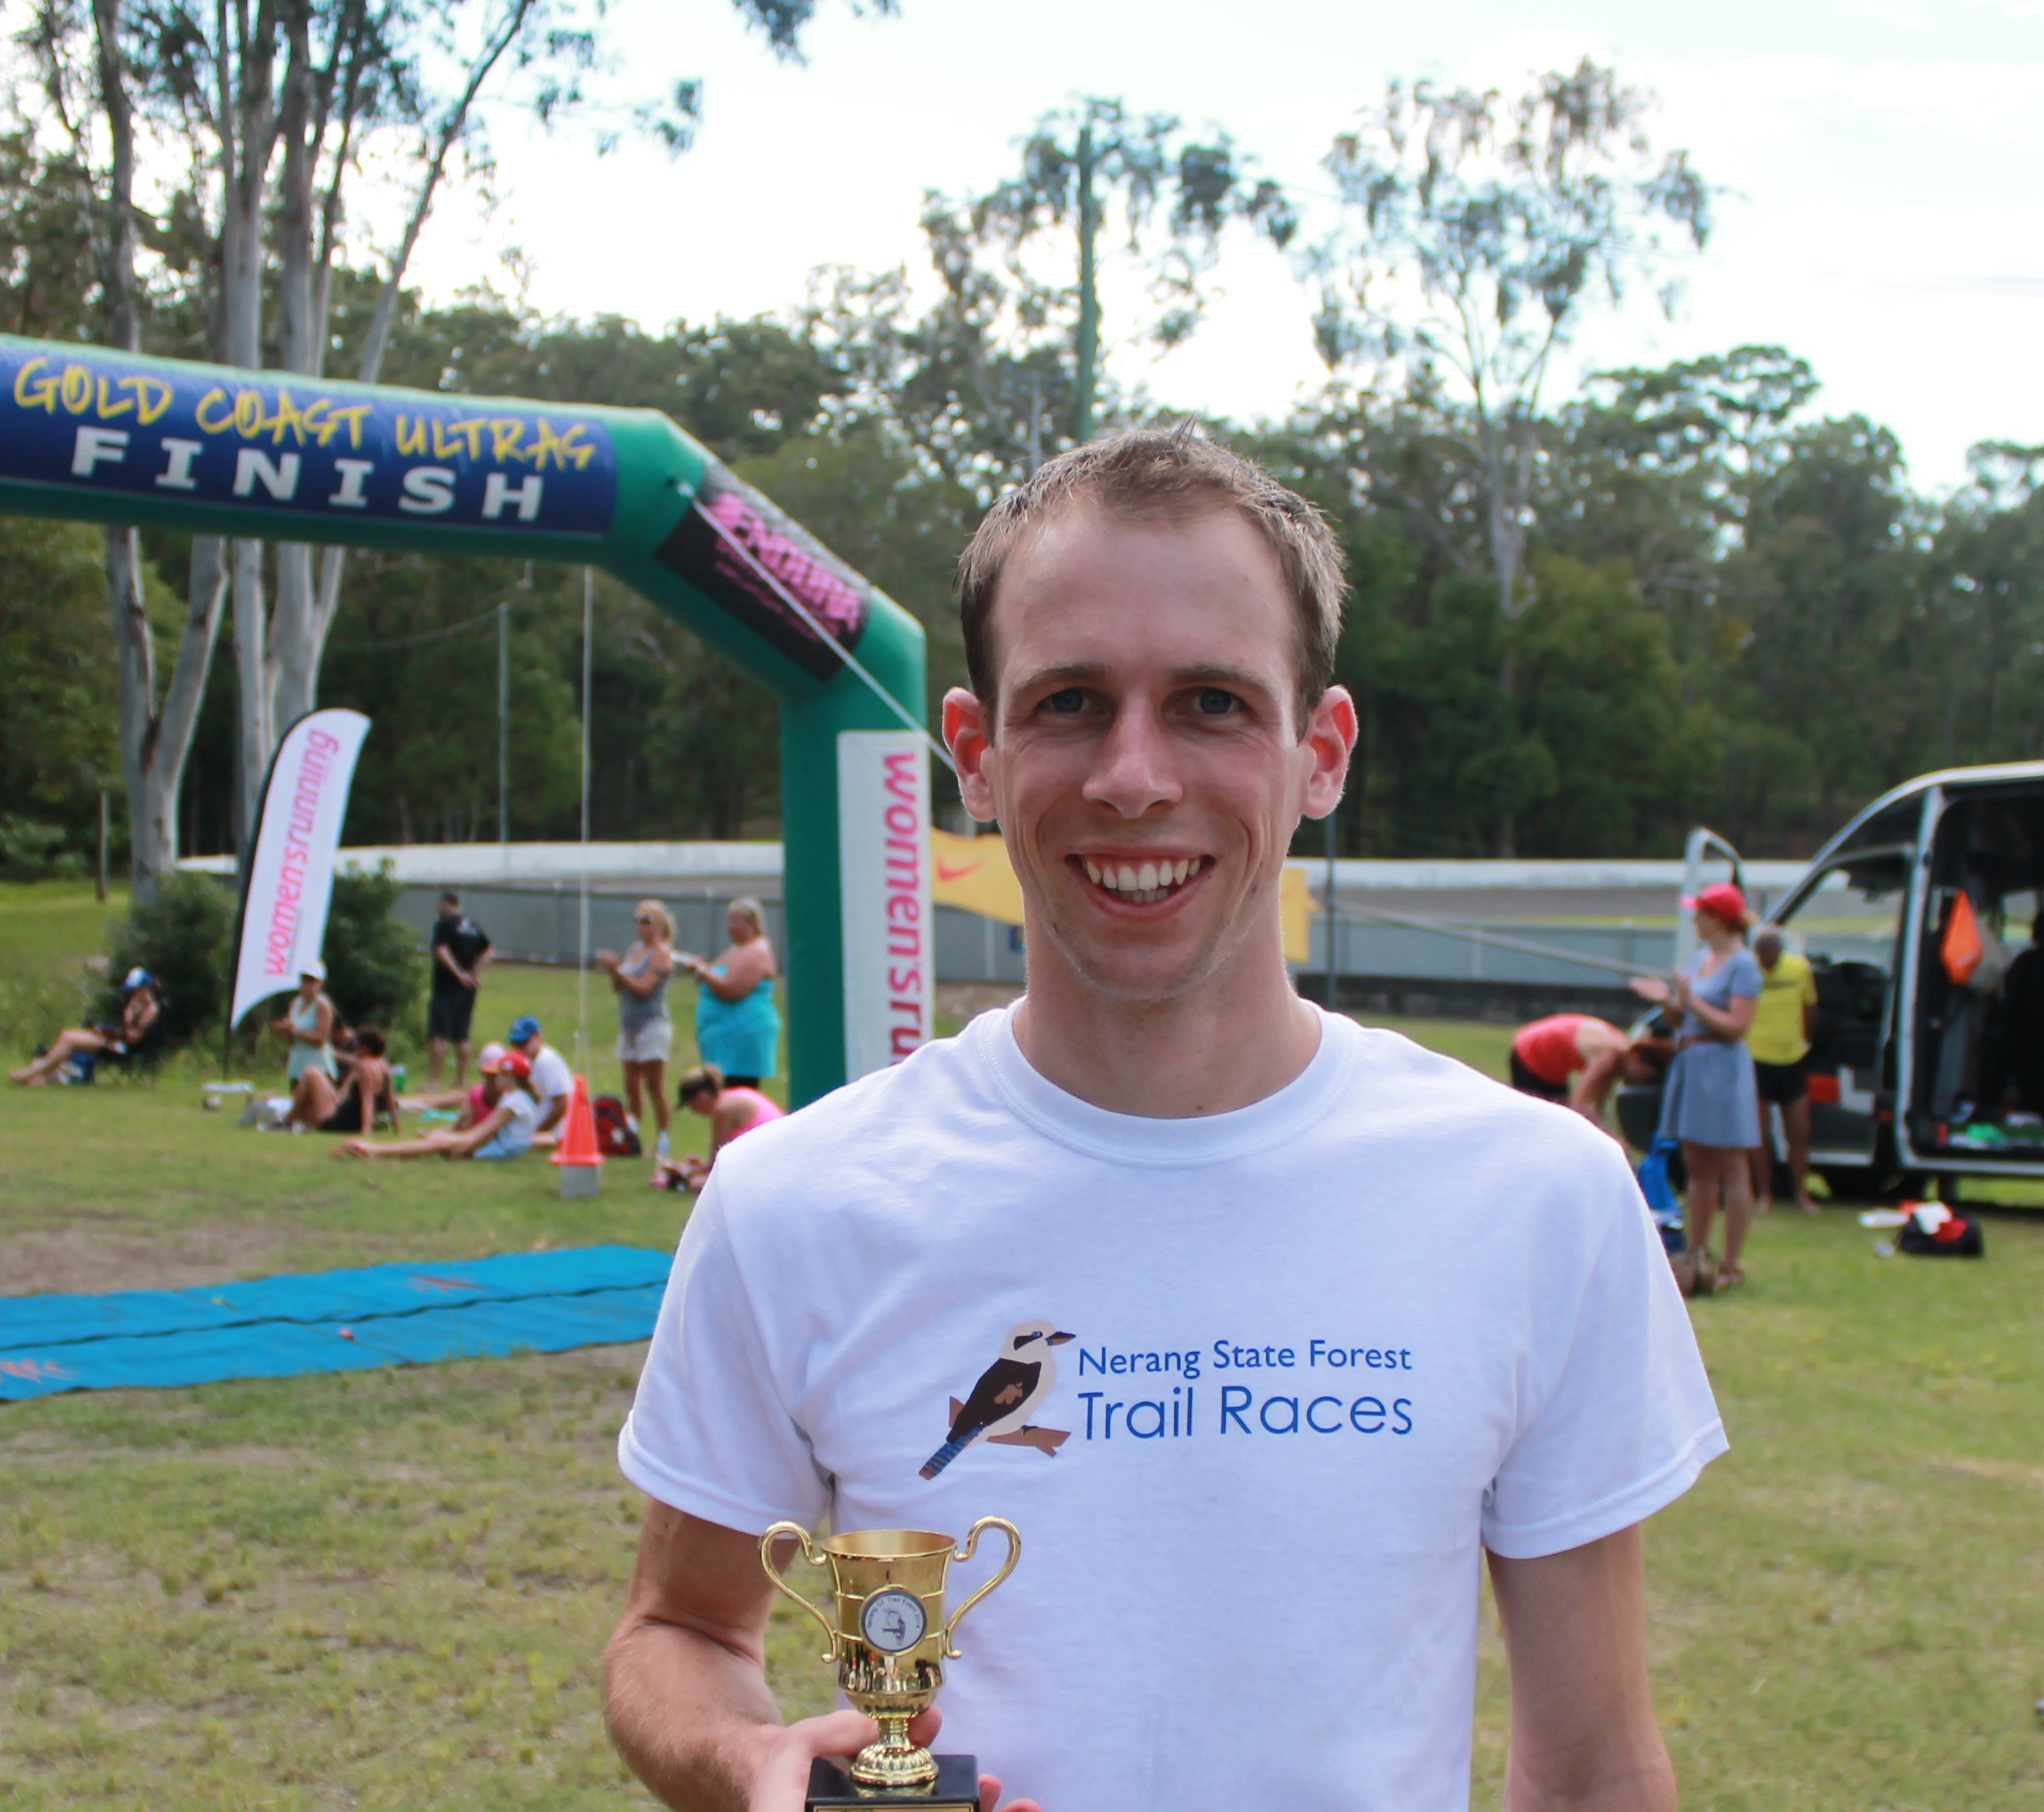 Shaun Clark running race finish - ashburton physiotherapist